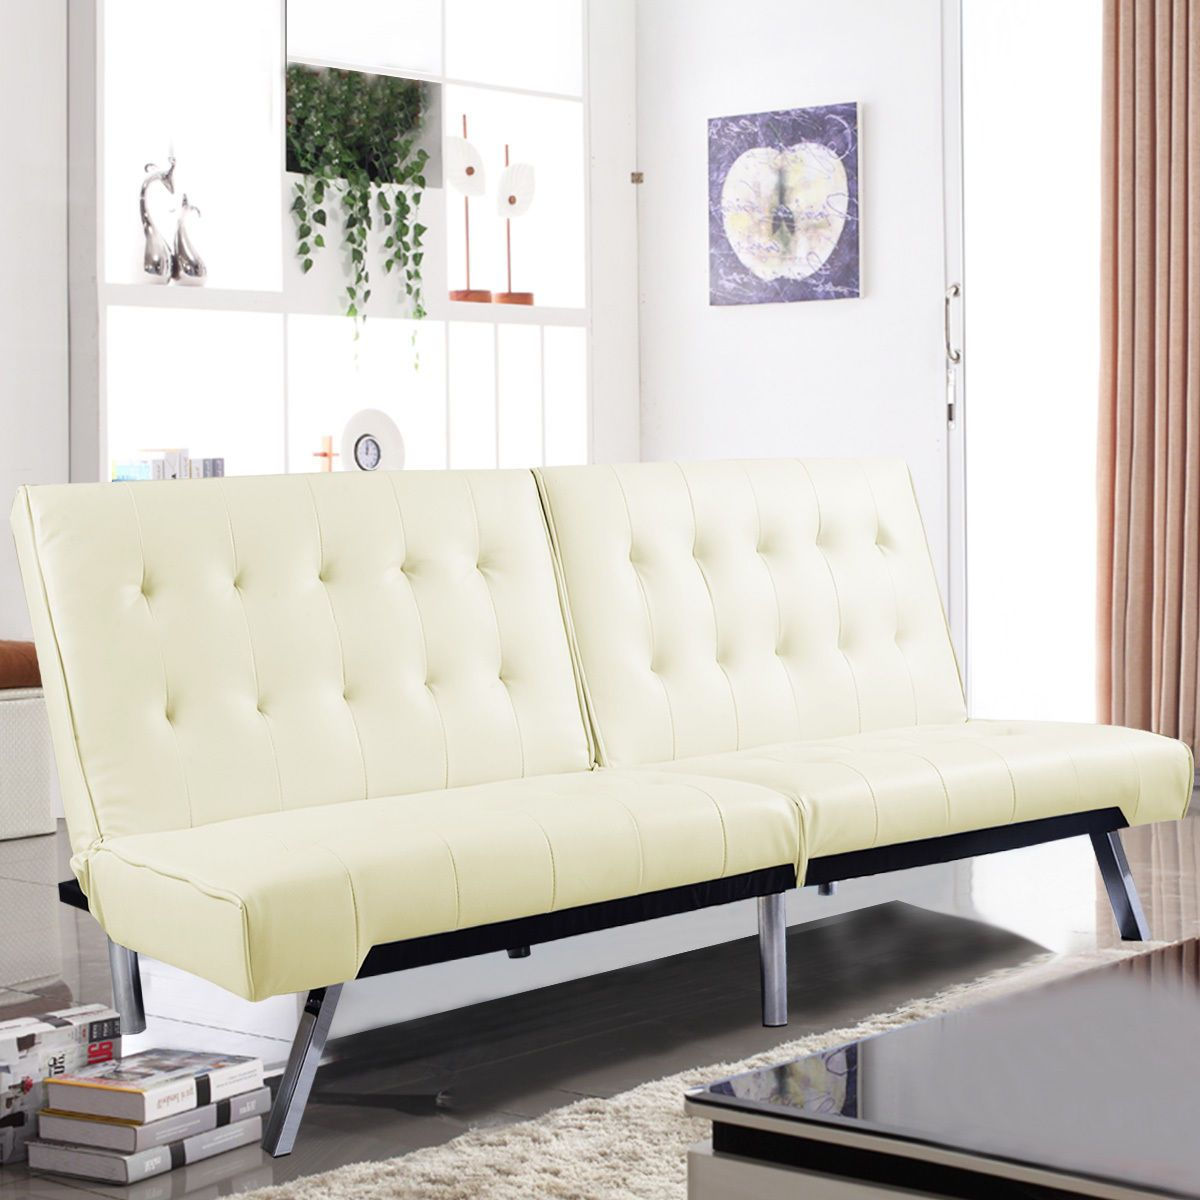 COSTWAY Splitback Futon Sofa Bed Sleeper Couch Living Room Lounger